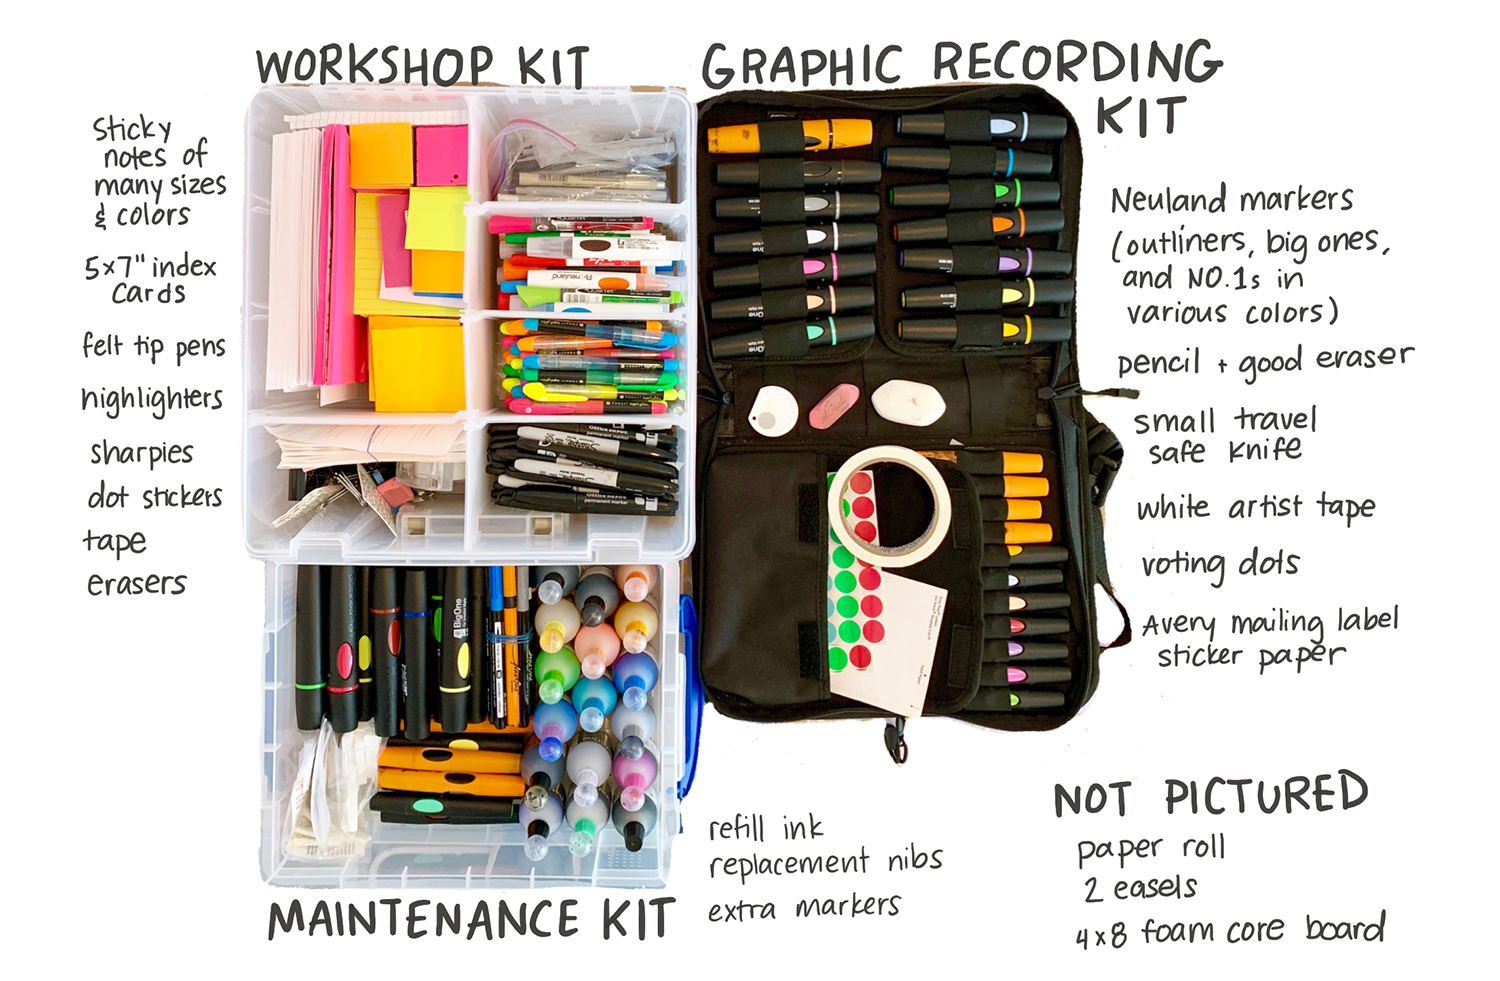 I have Accumulated these supplies over the span of 8 years. Start with what you have and build your own kit out from there.